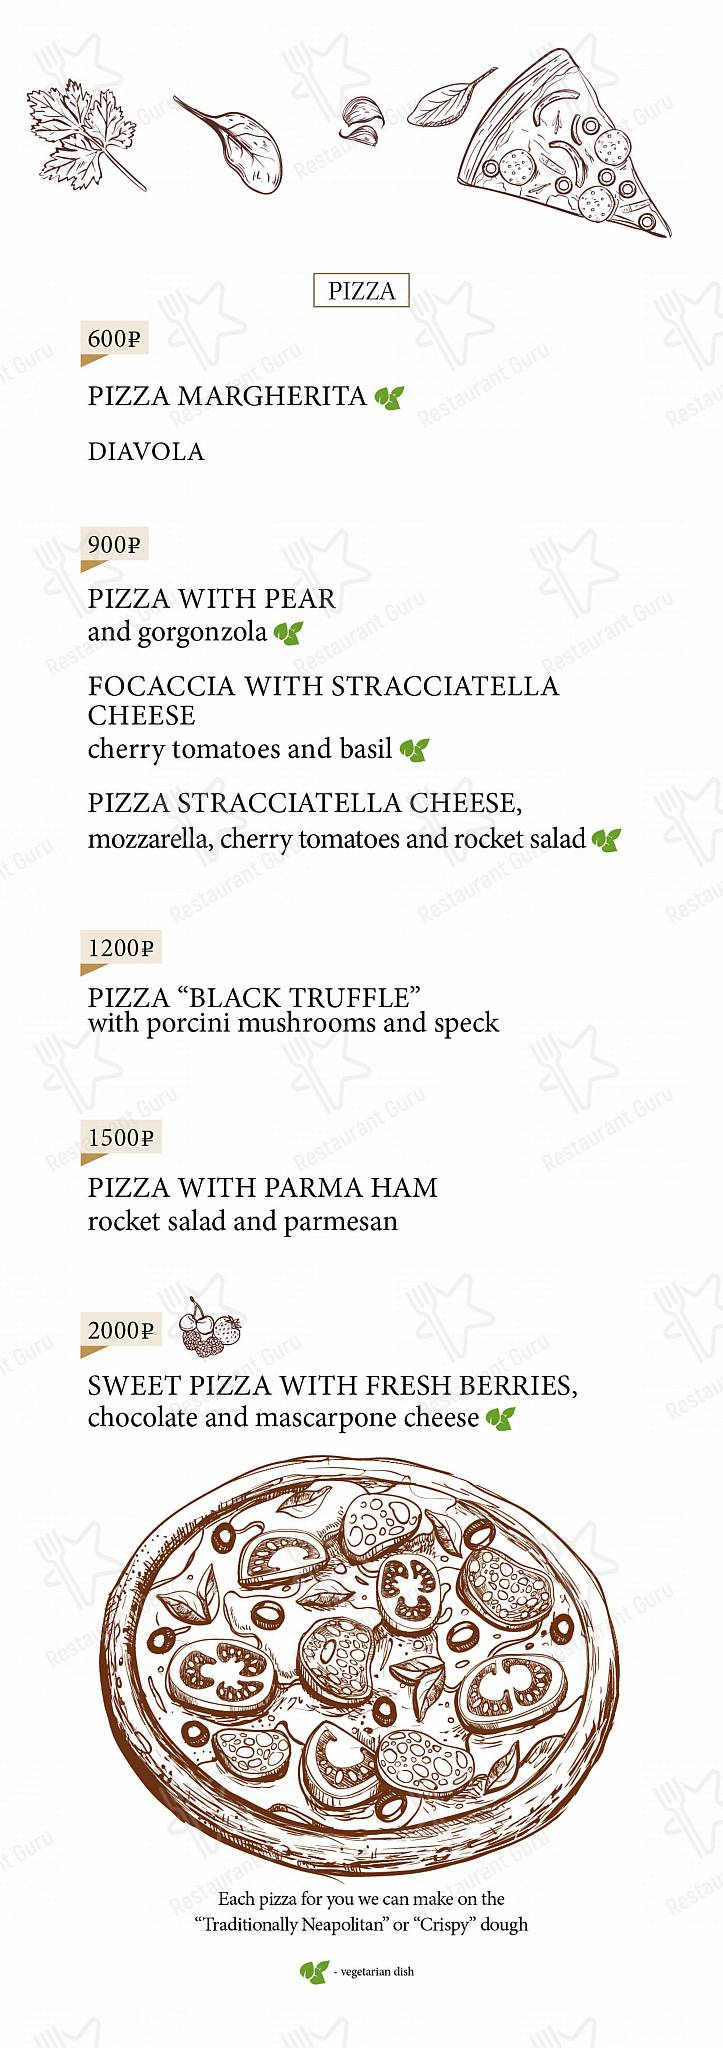 Balzi Rossi menu - dishes and beverages